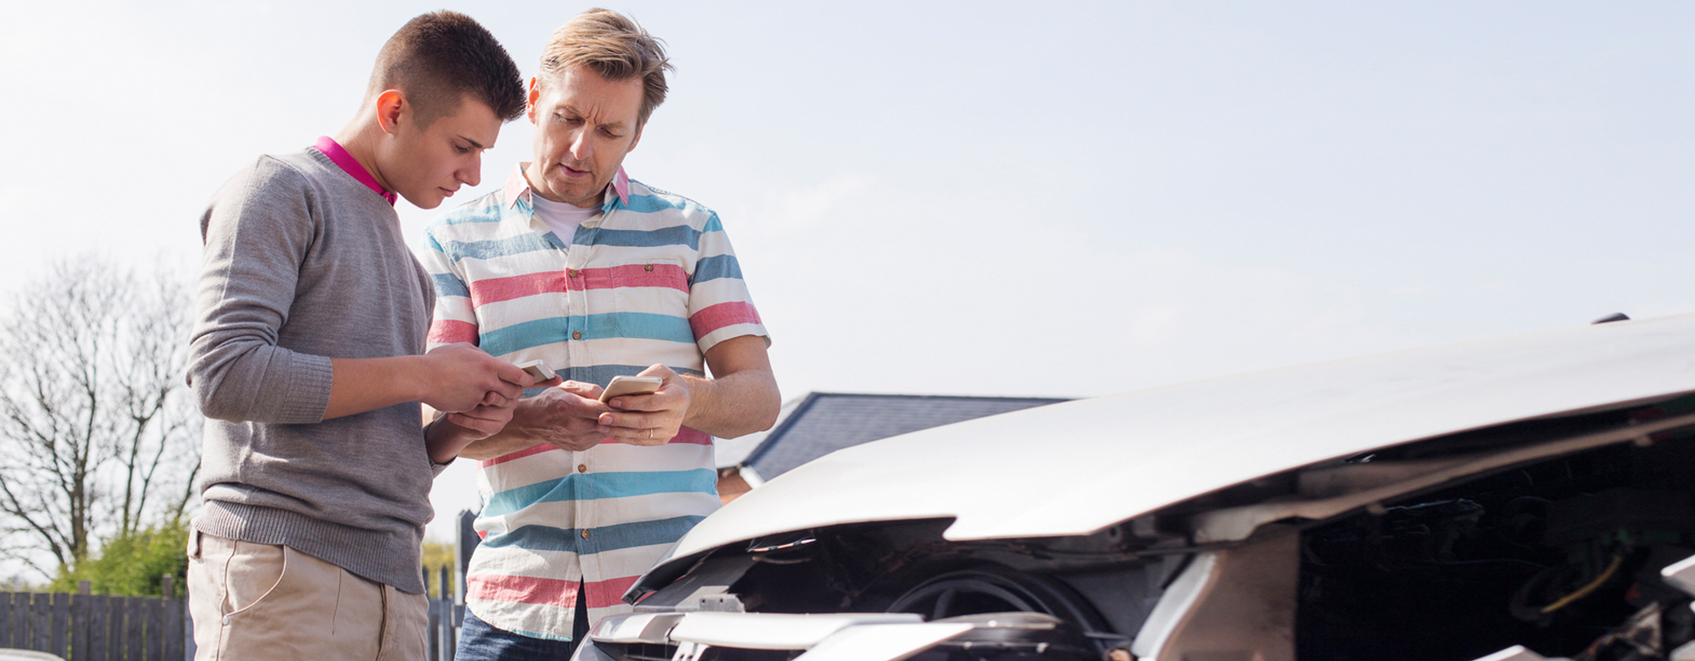 People discussing a car crash while looking at their phone.